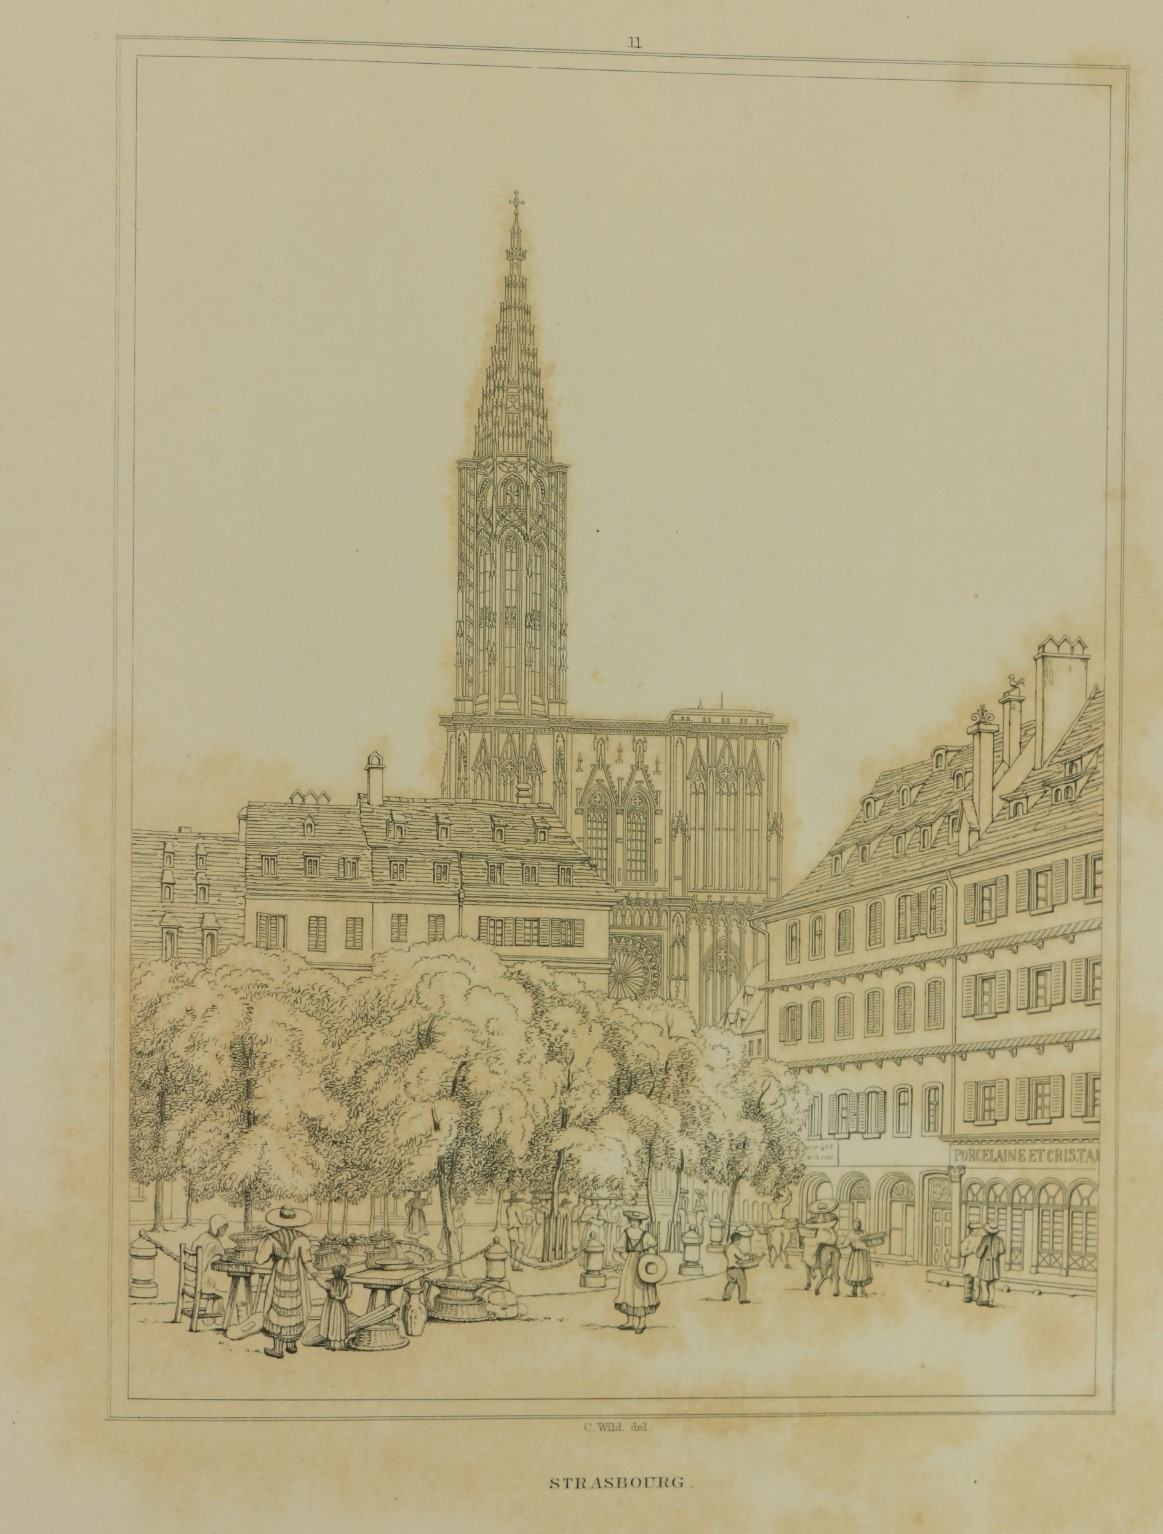 Wild (Charles)ÿSelect Examples of Architectural Grandeur in Belgium, Germany and France, Lg. folio - Image 4 of 6